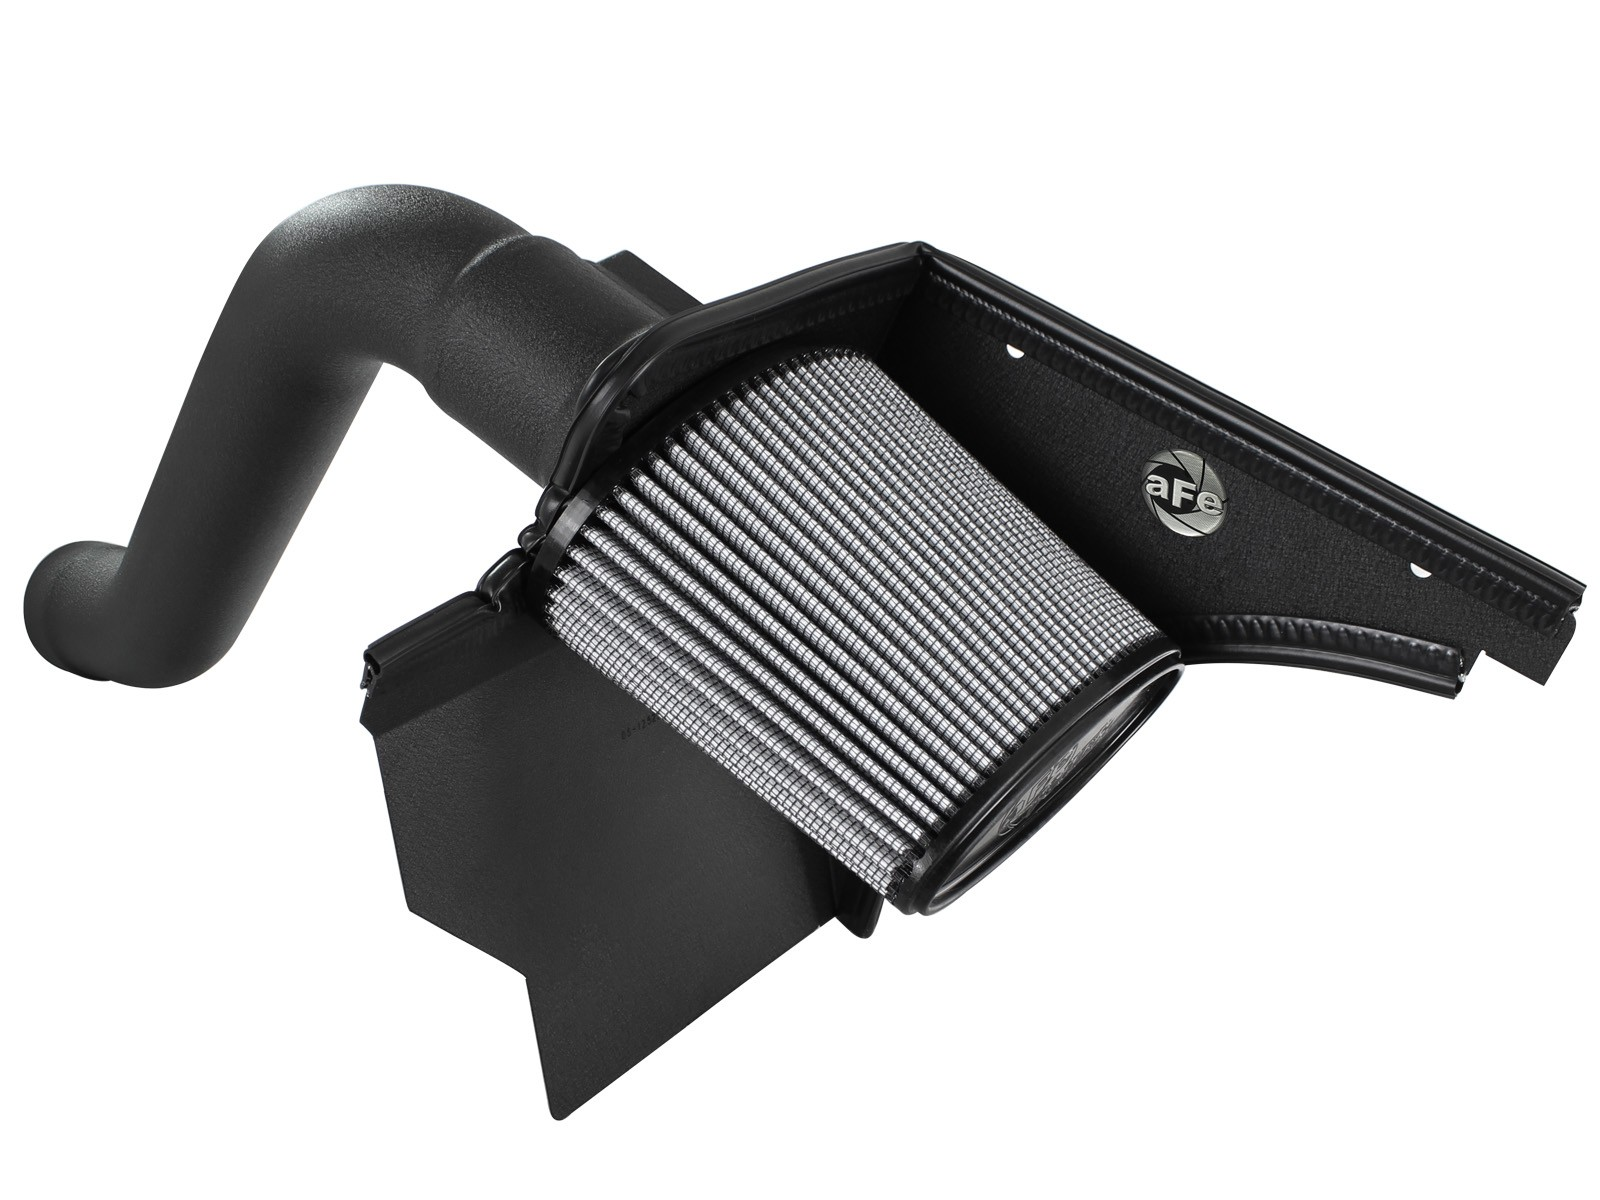 aFe POWER 51-12522 Magnum FORCE Stage-2 Pro DRY S Cold Air Intake System